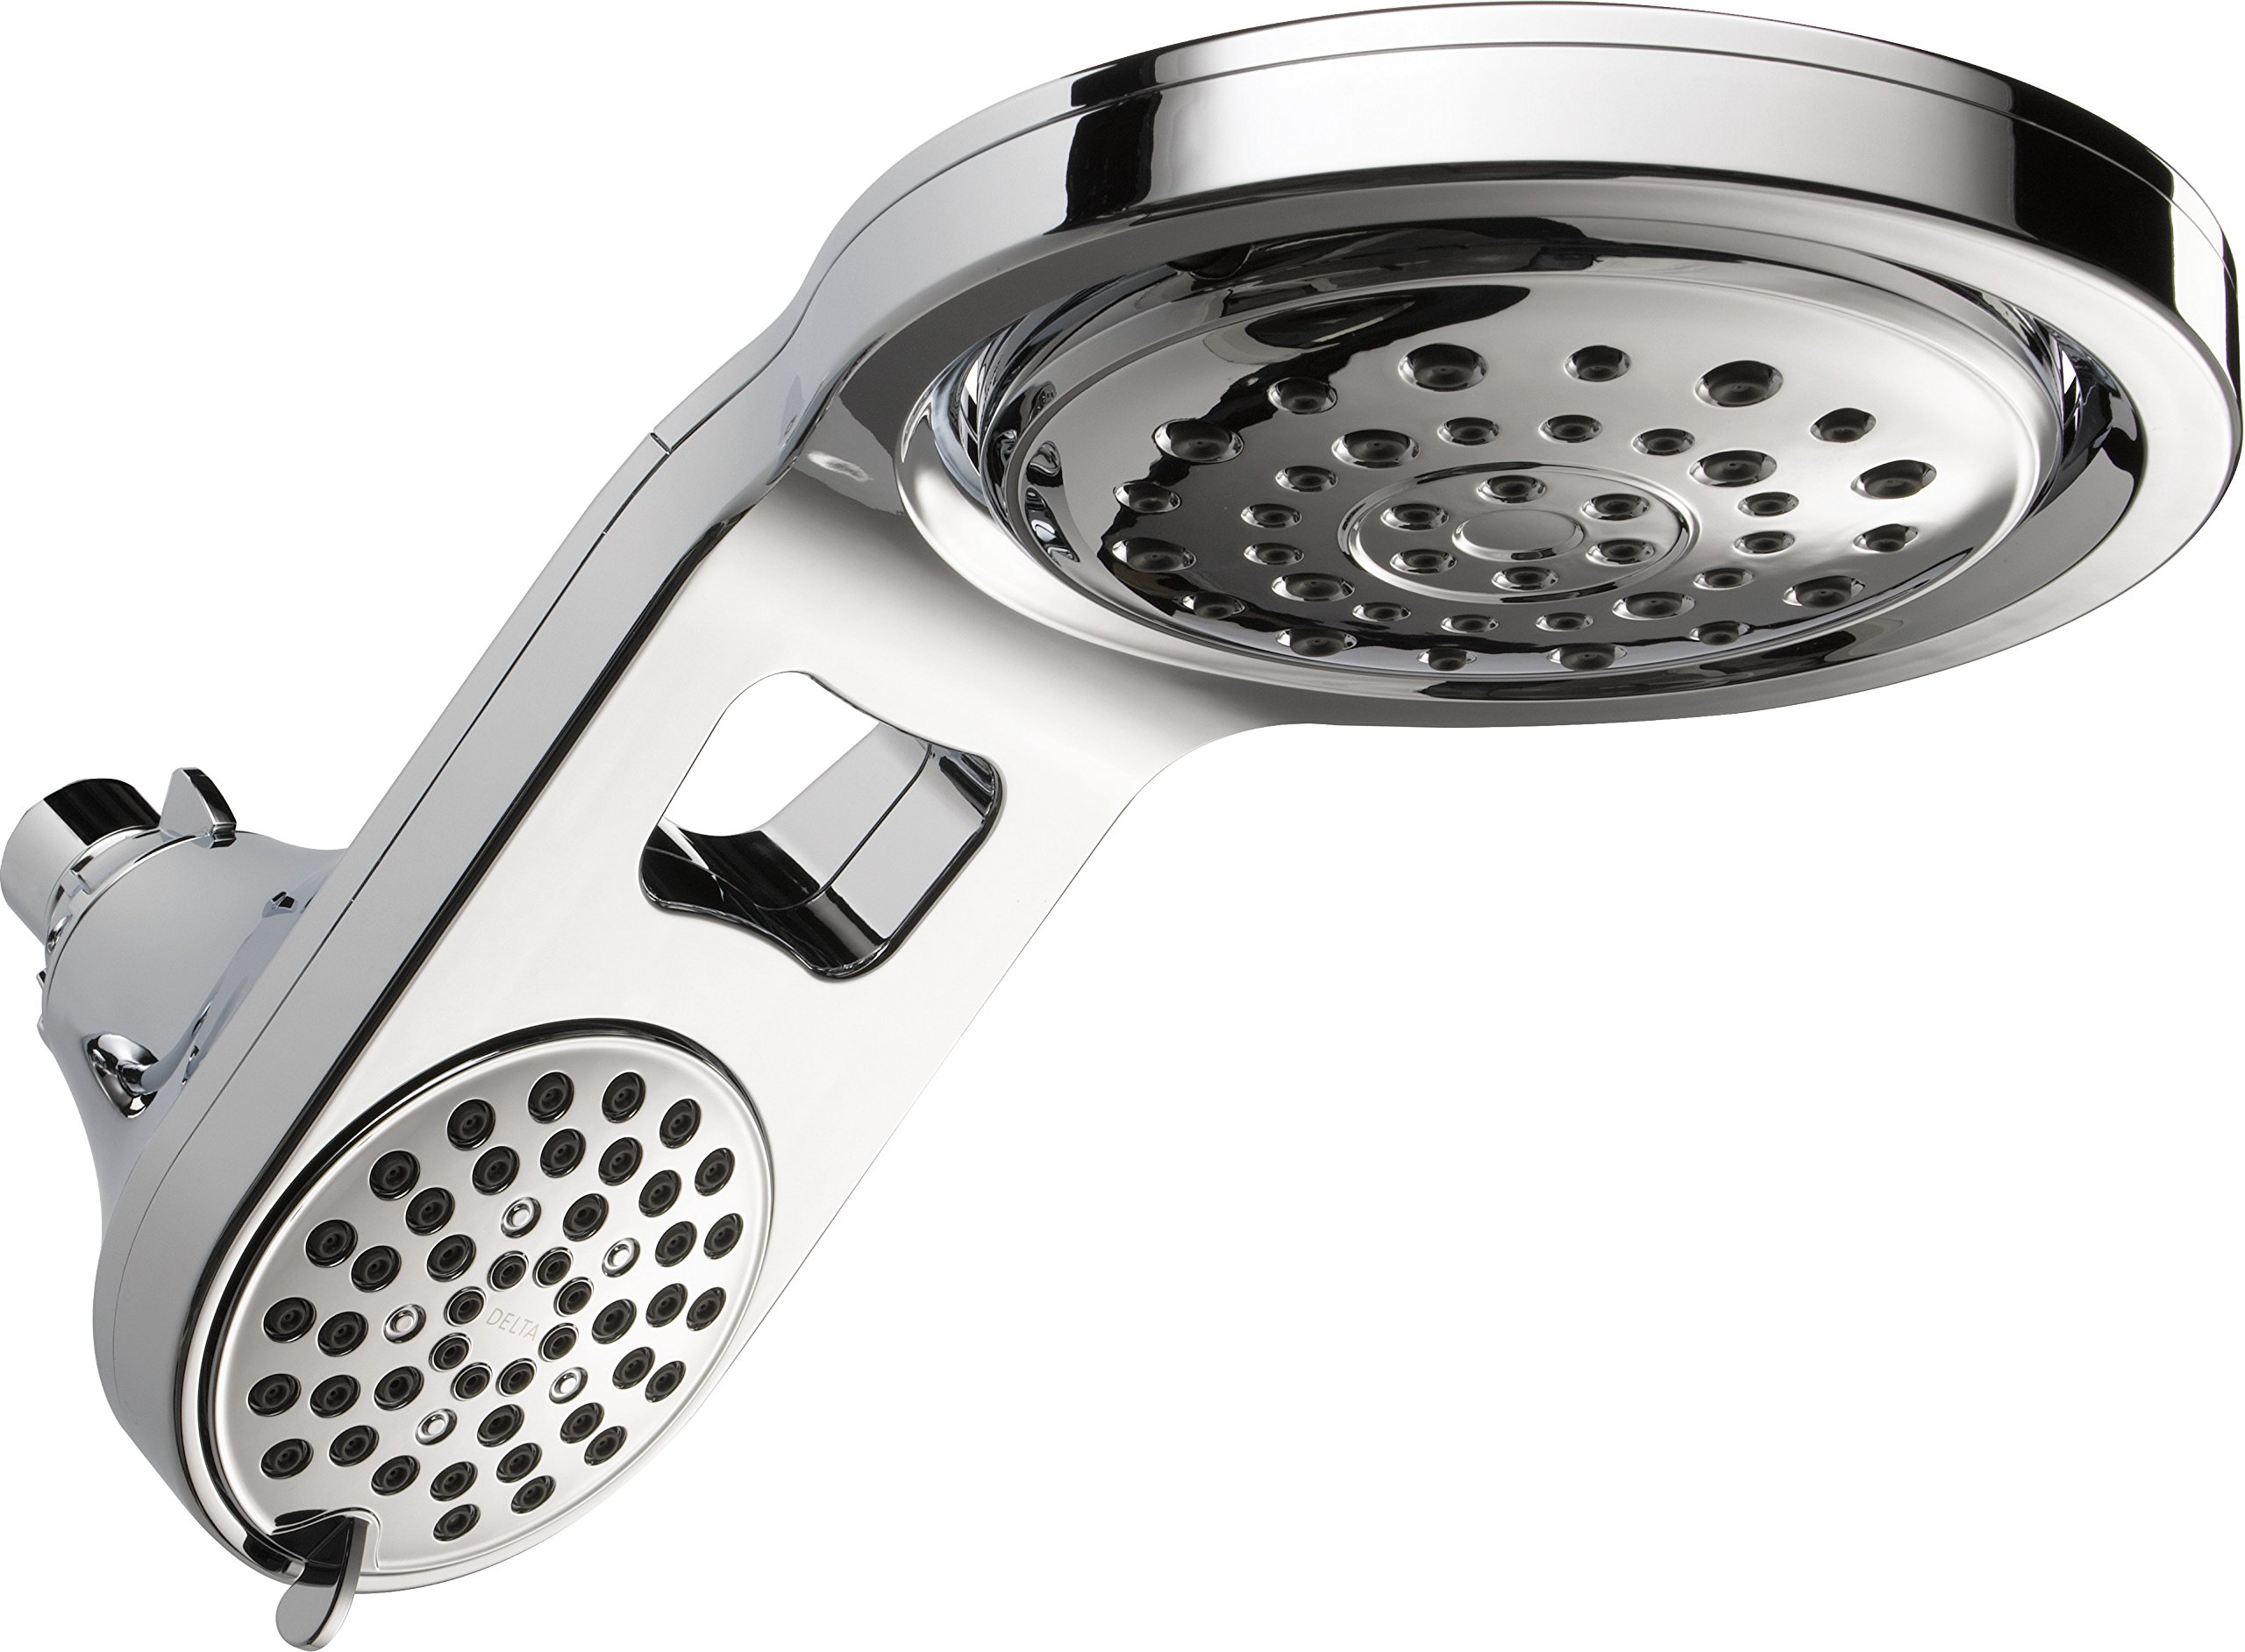 Delta 58580-PK UniversalShoweringComponents Hydrorain 5-Setting Integrated Raincan/Shower head, Chrome